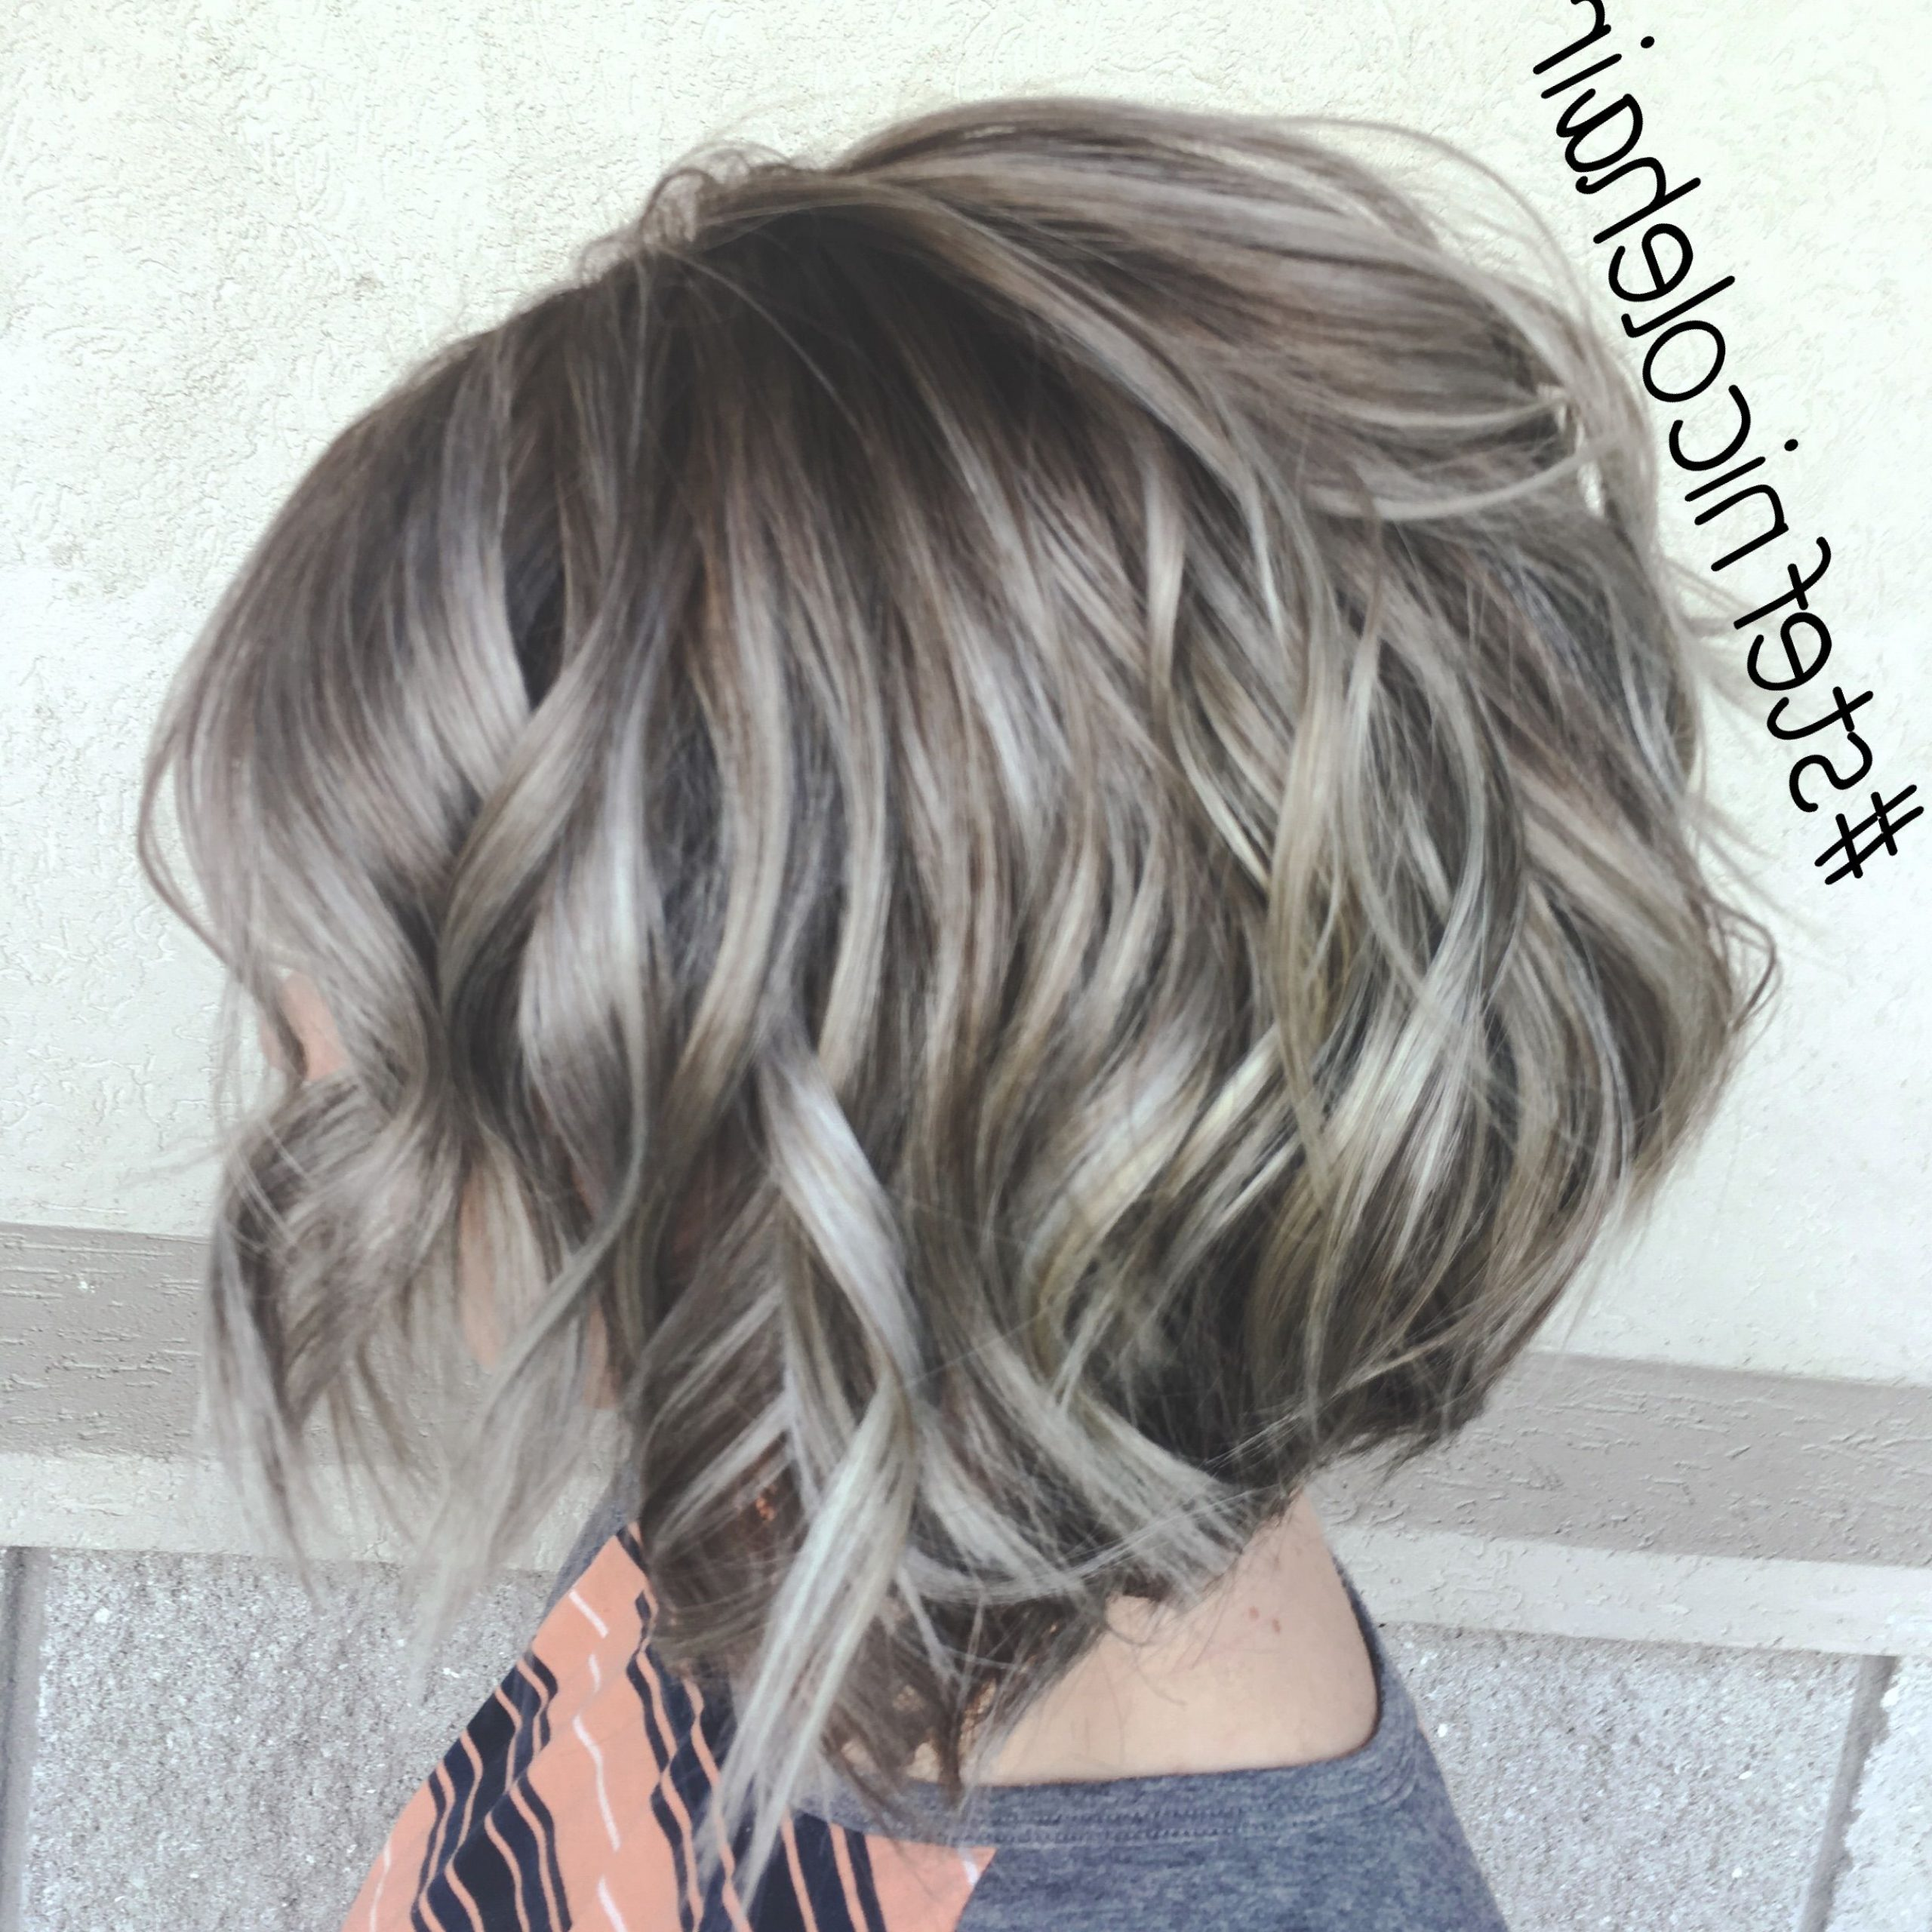 Latest Smokey Pastel Colors Pixie Haircuts Intended For Silver Hair Smokey Root (View 7 of 20)